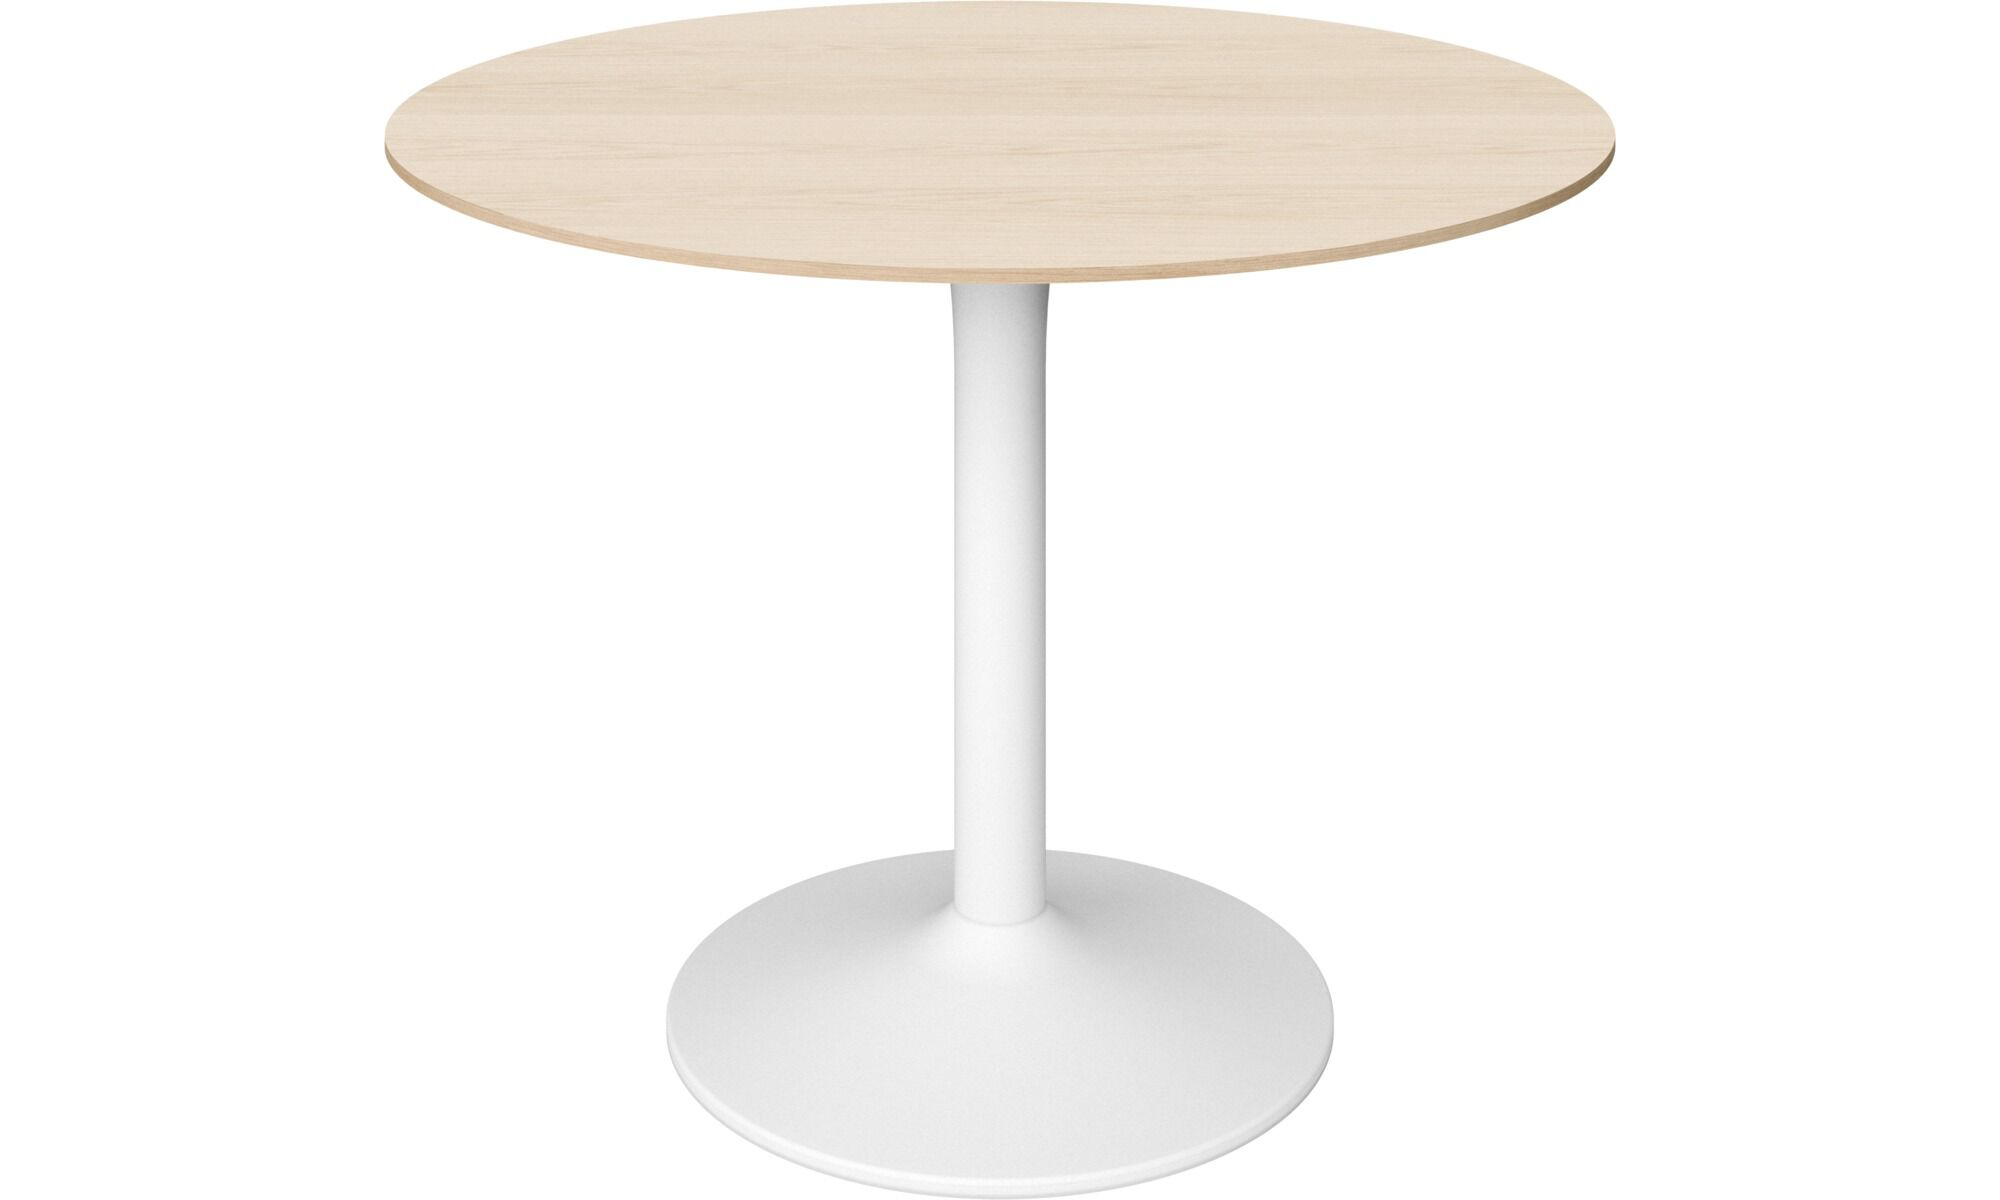 Dining Tables   New York Table   Round   Brown   Oak